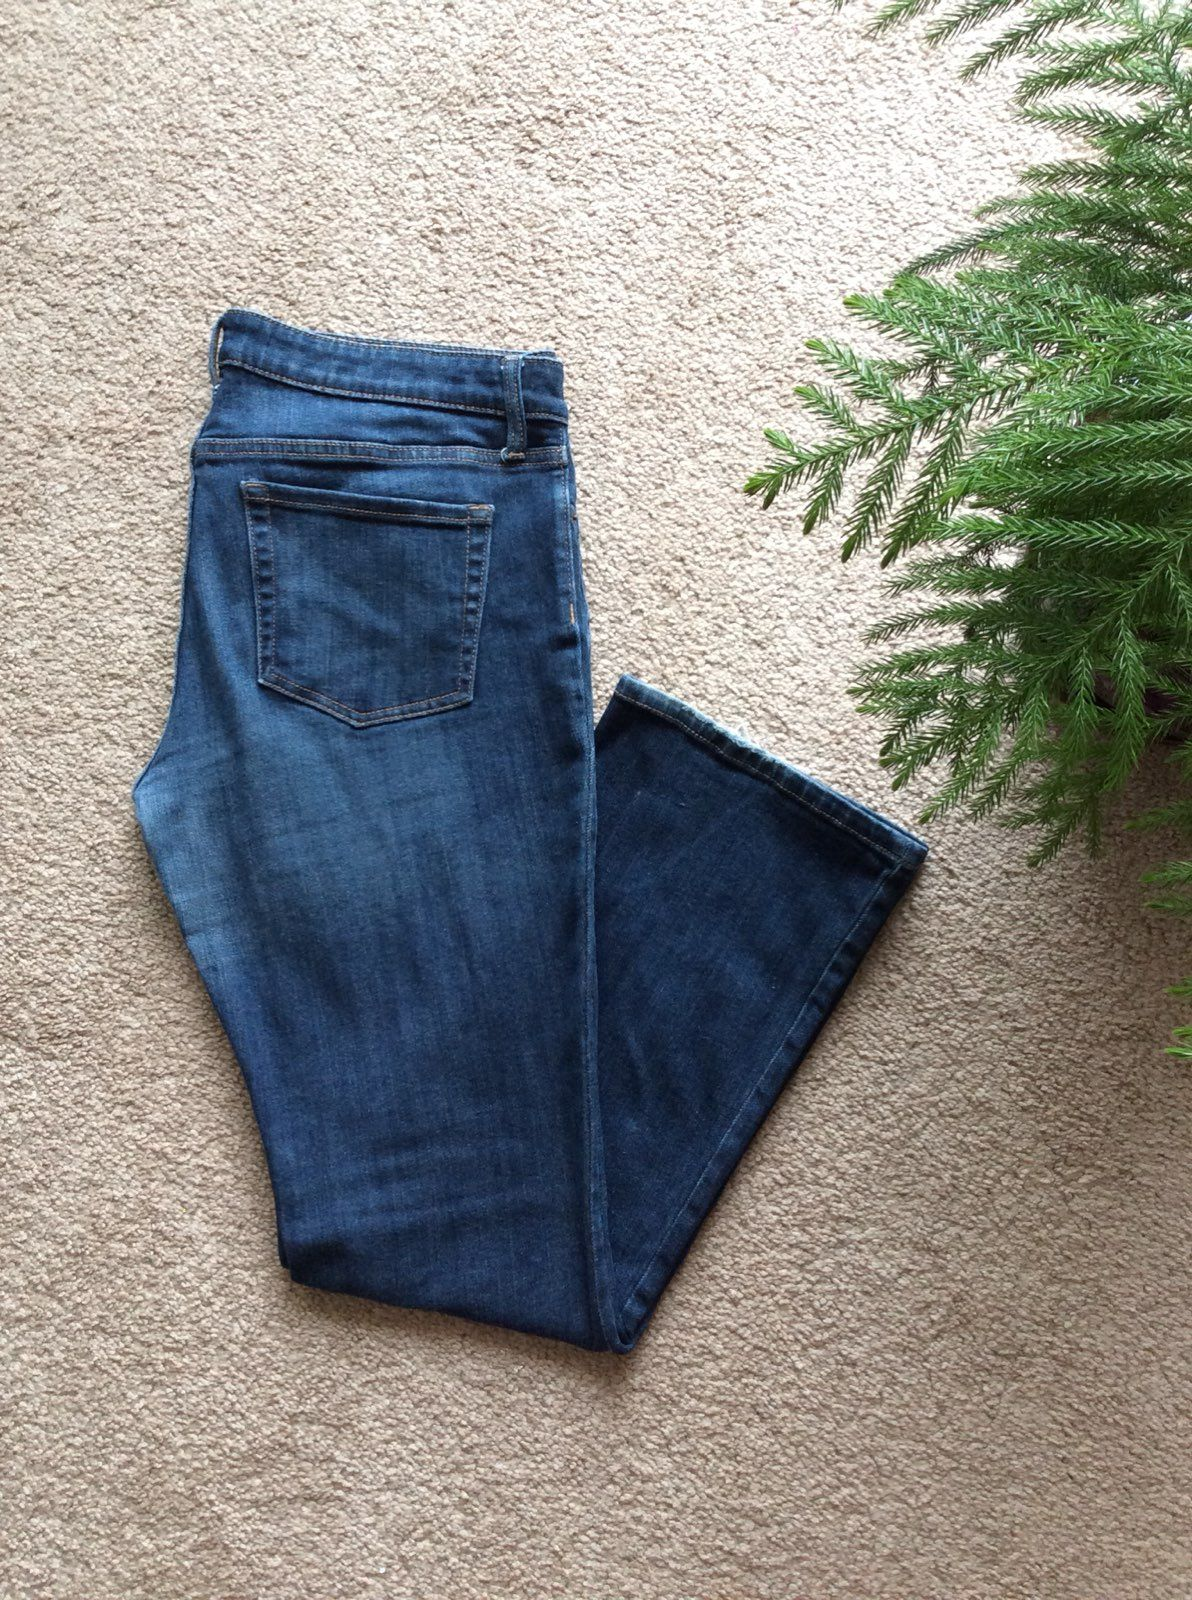 GAP Outlet Premium Bootcut 5 Pocket Jean